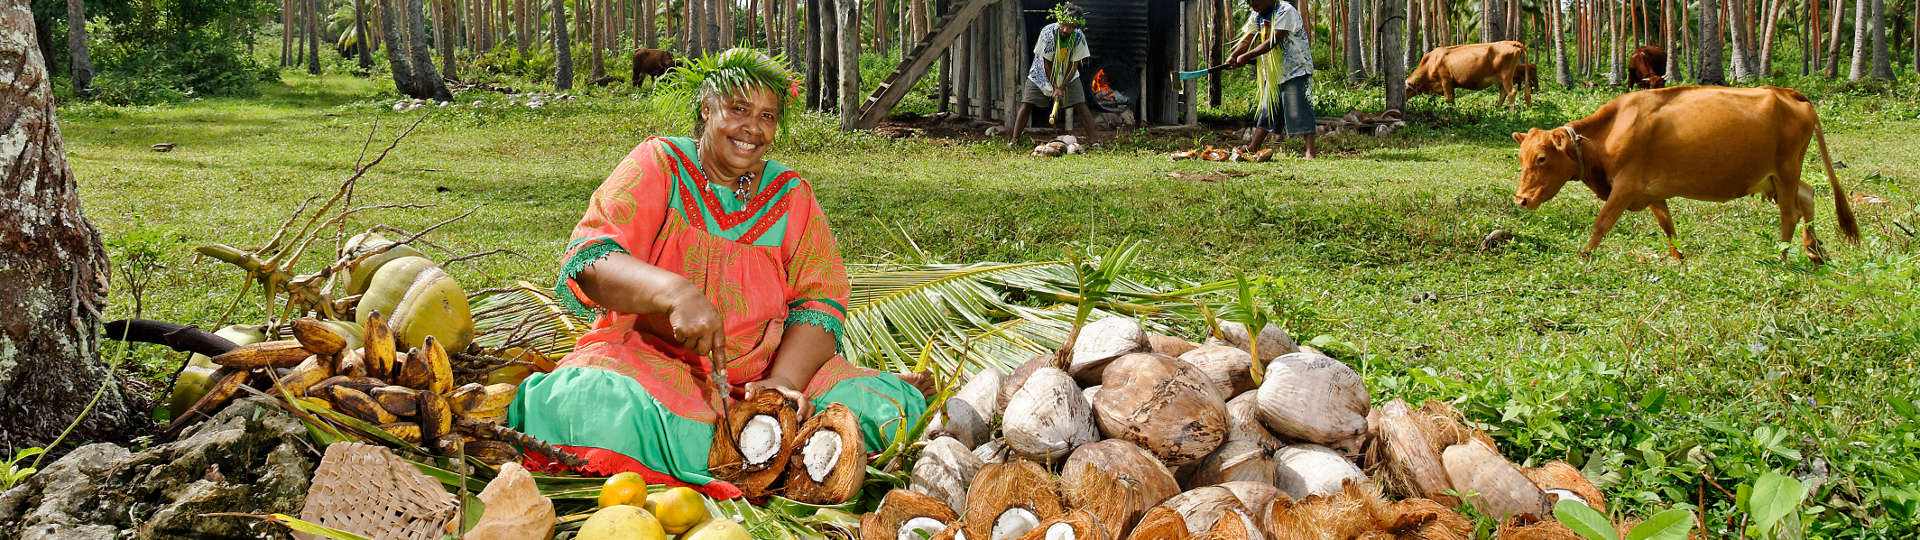 coconut grove saint joseph islands Fair New Caledonia